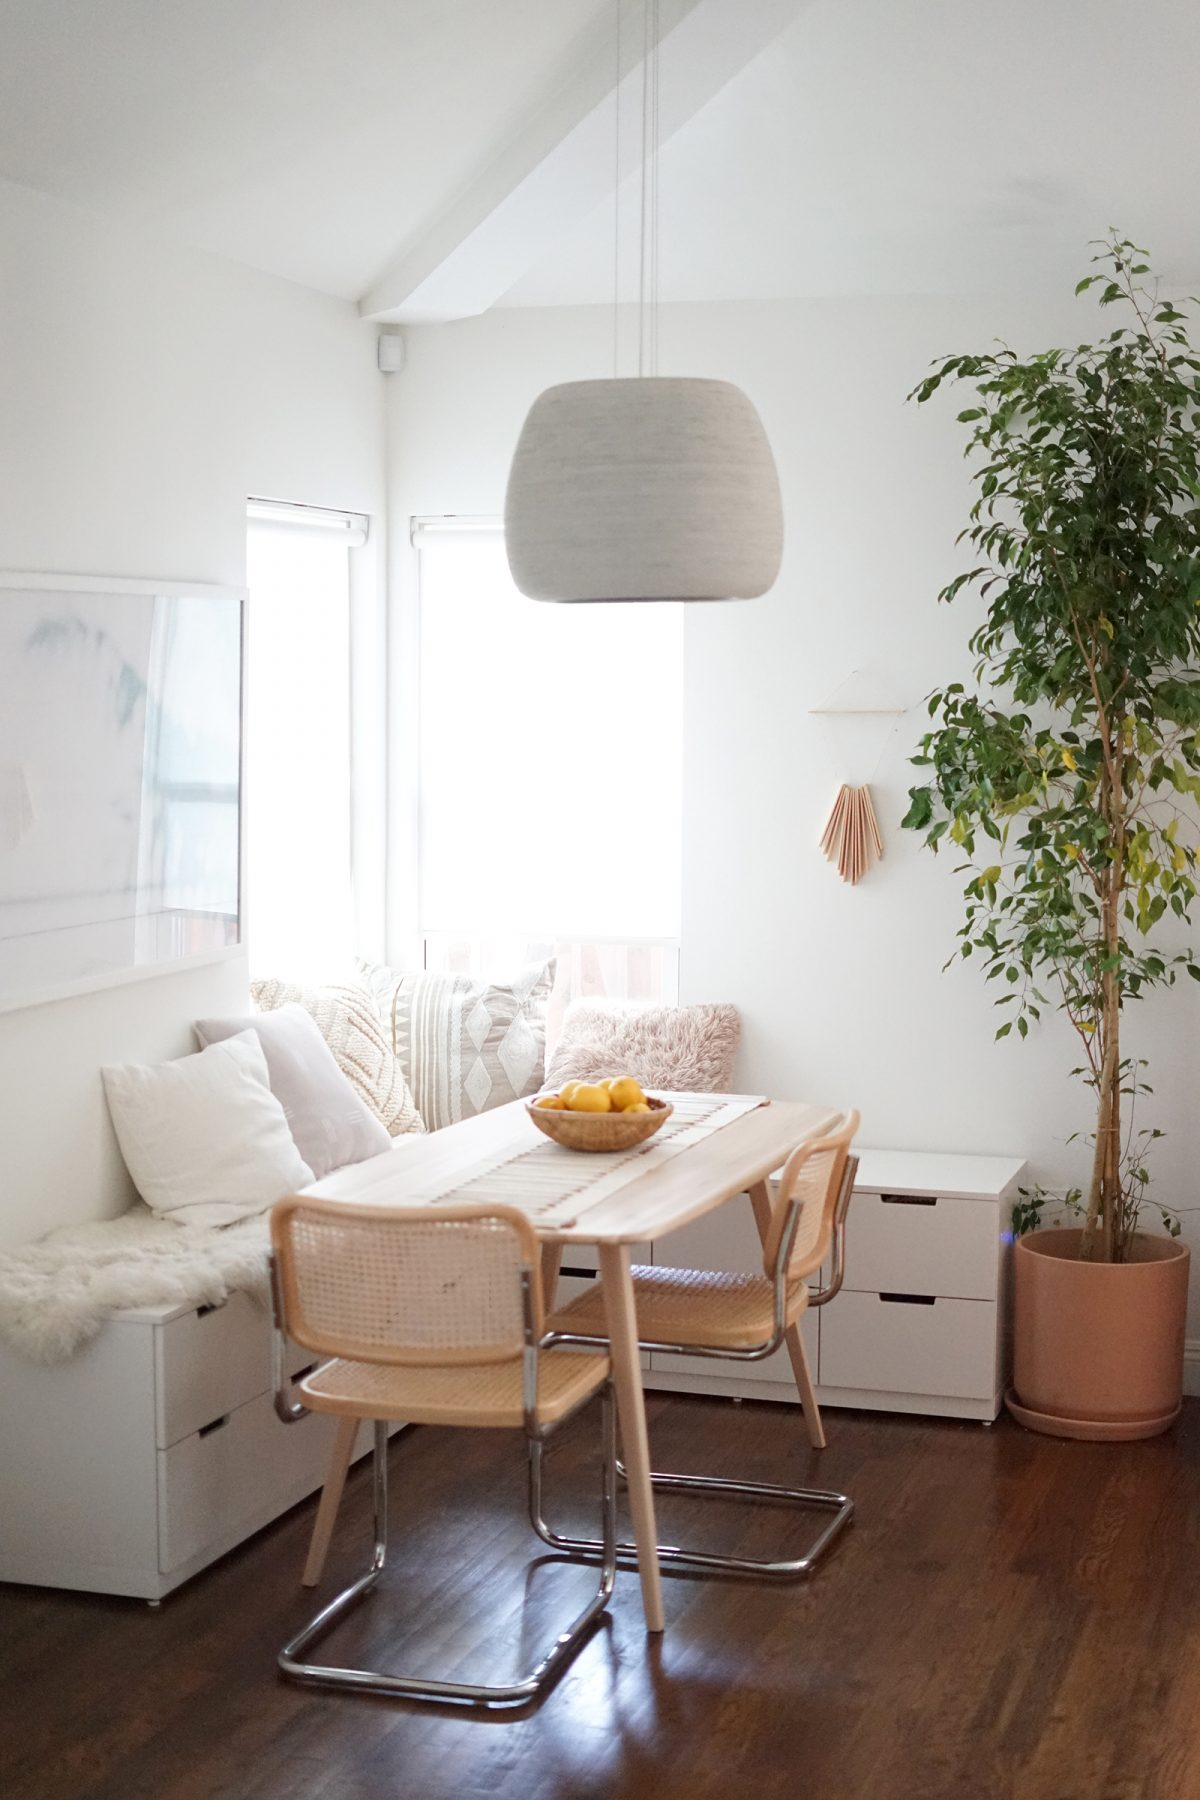 5 IKEA Hacks for Organizing Small Spaces